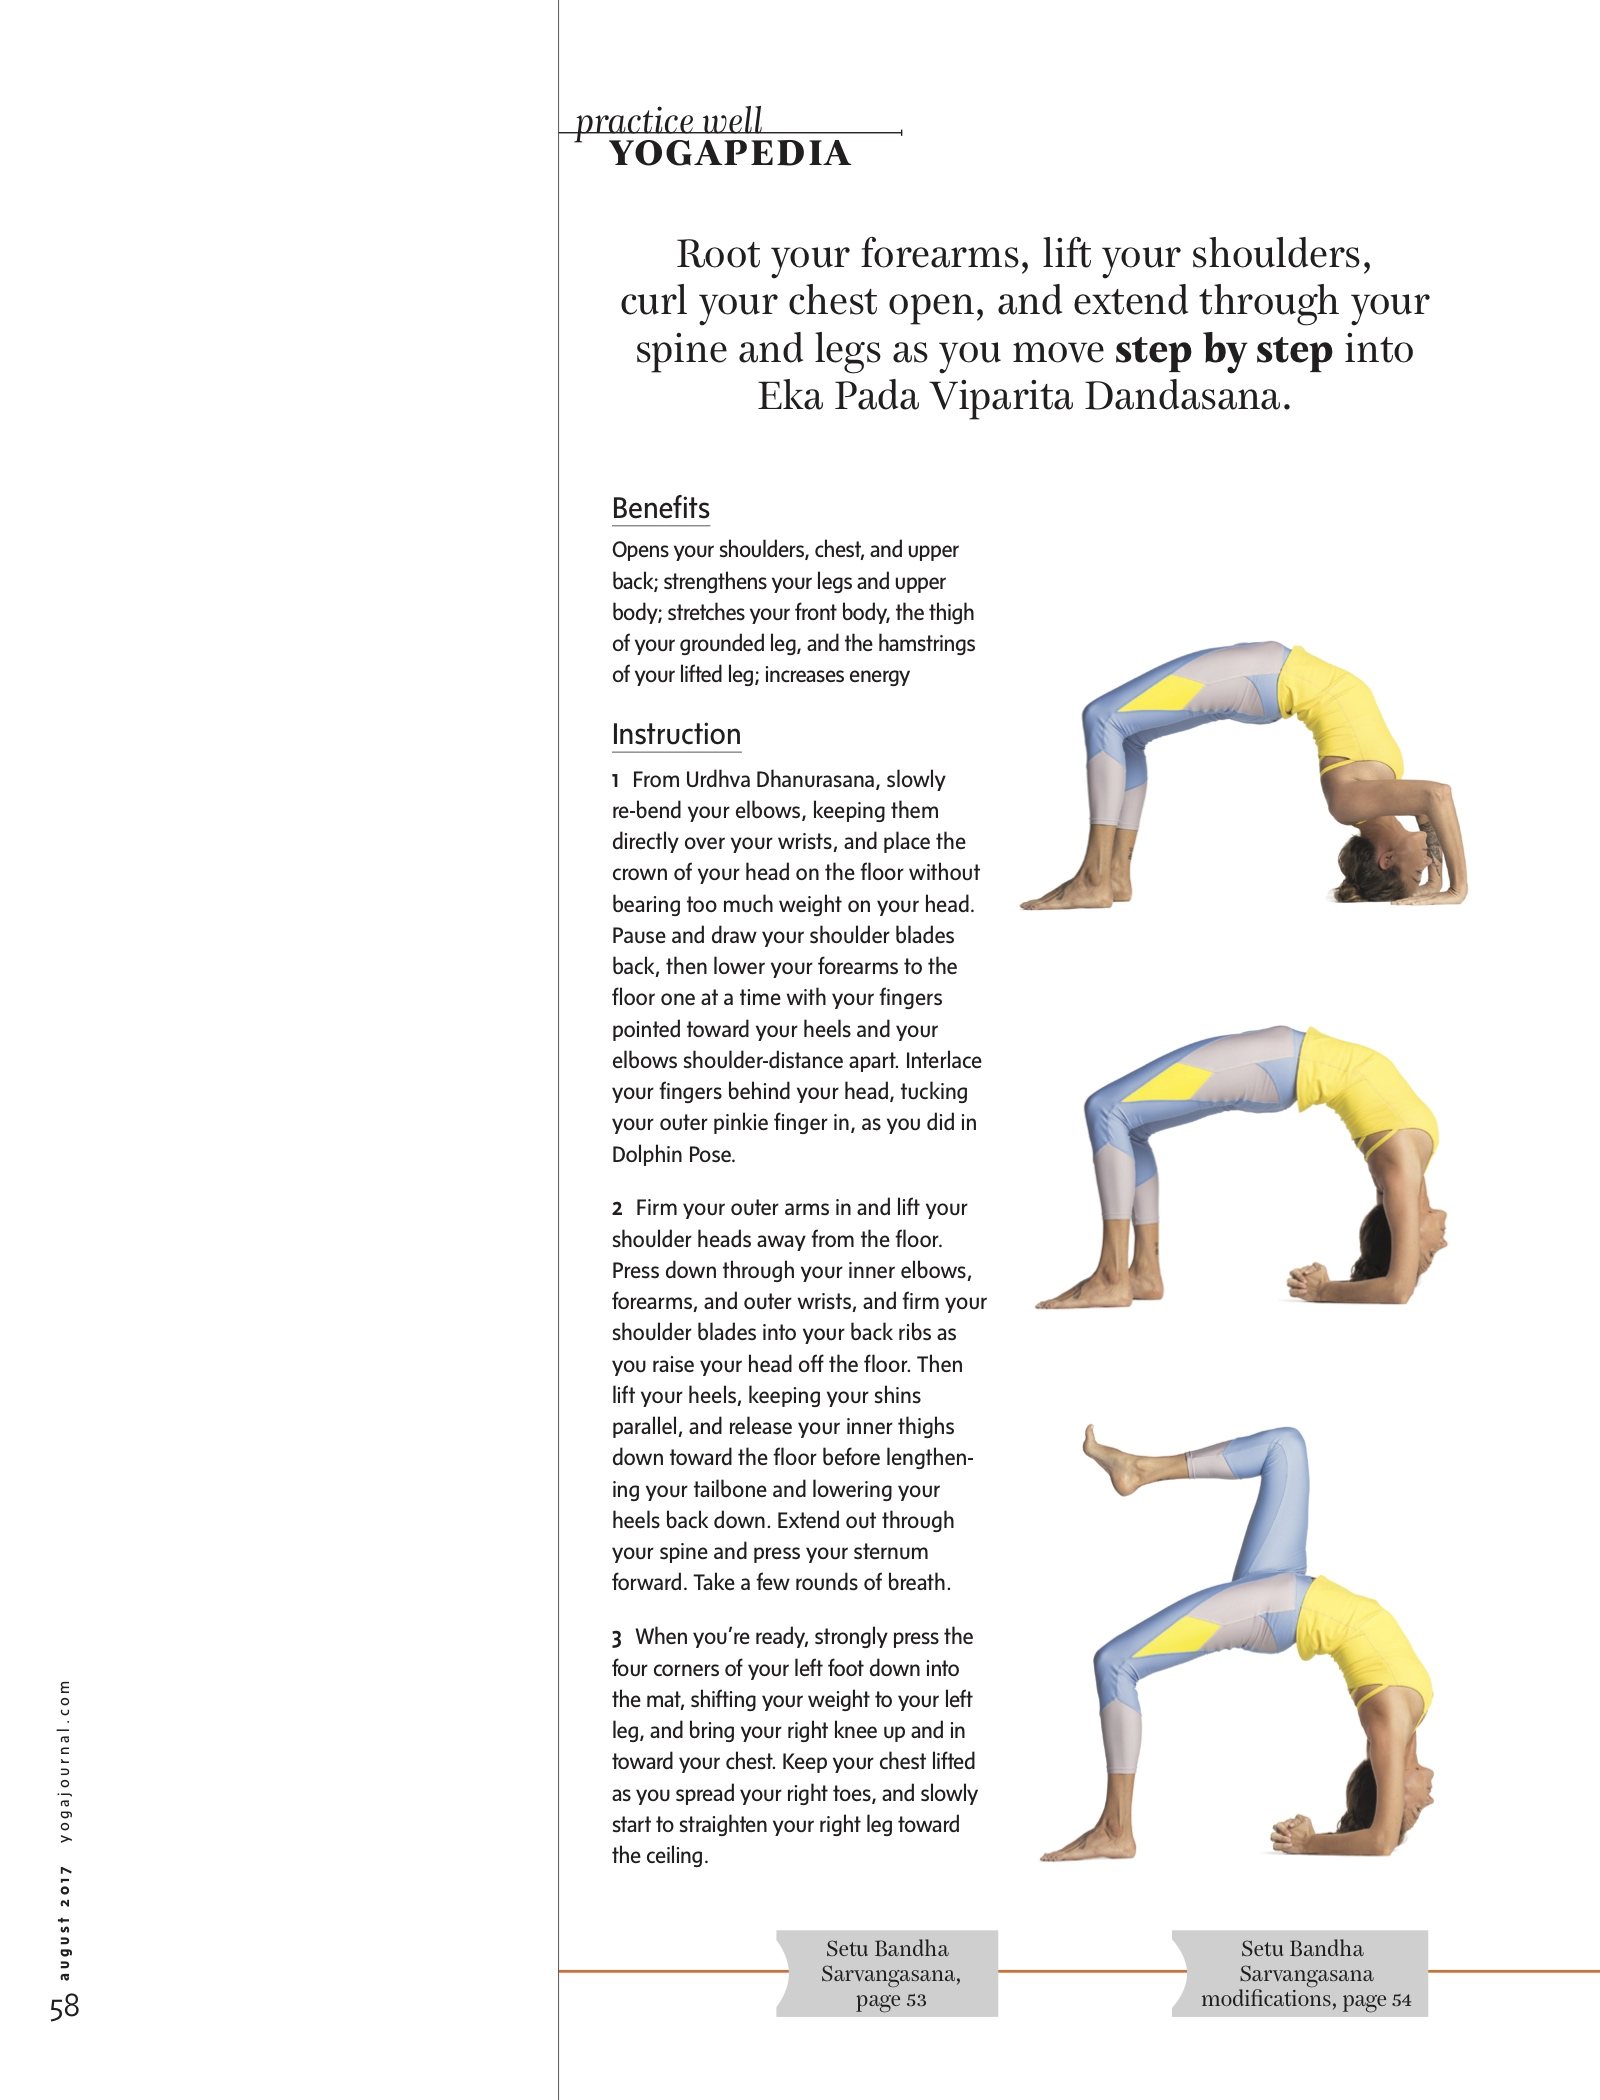 Yogapedia_292 copy.jpg